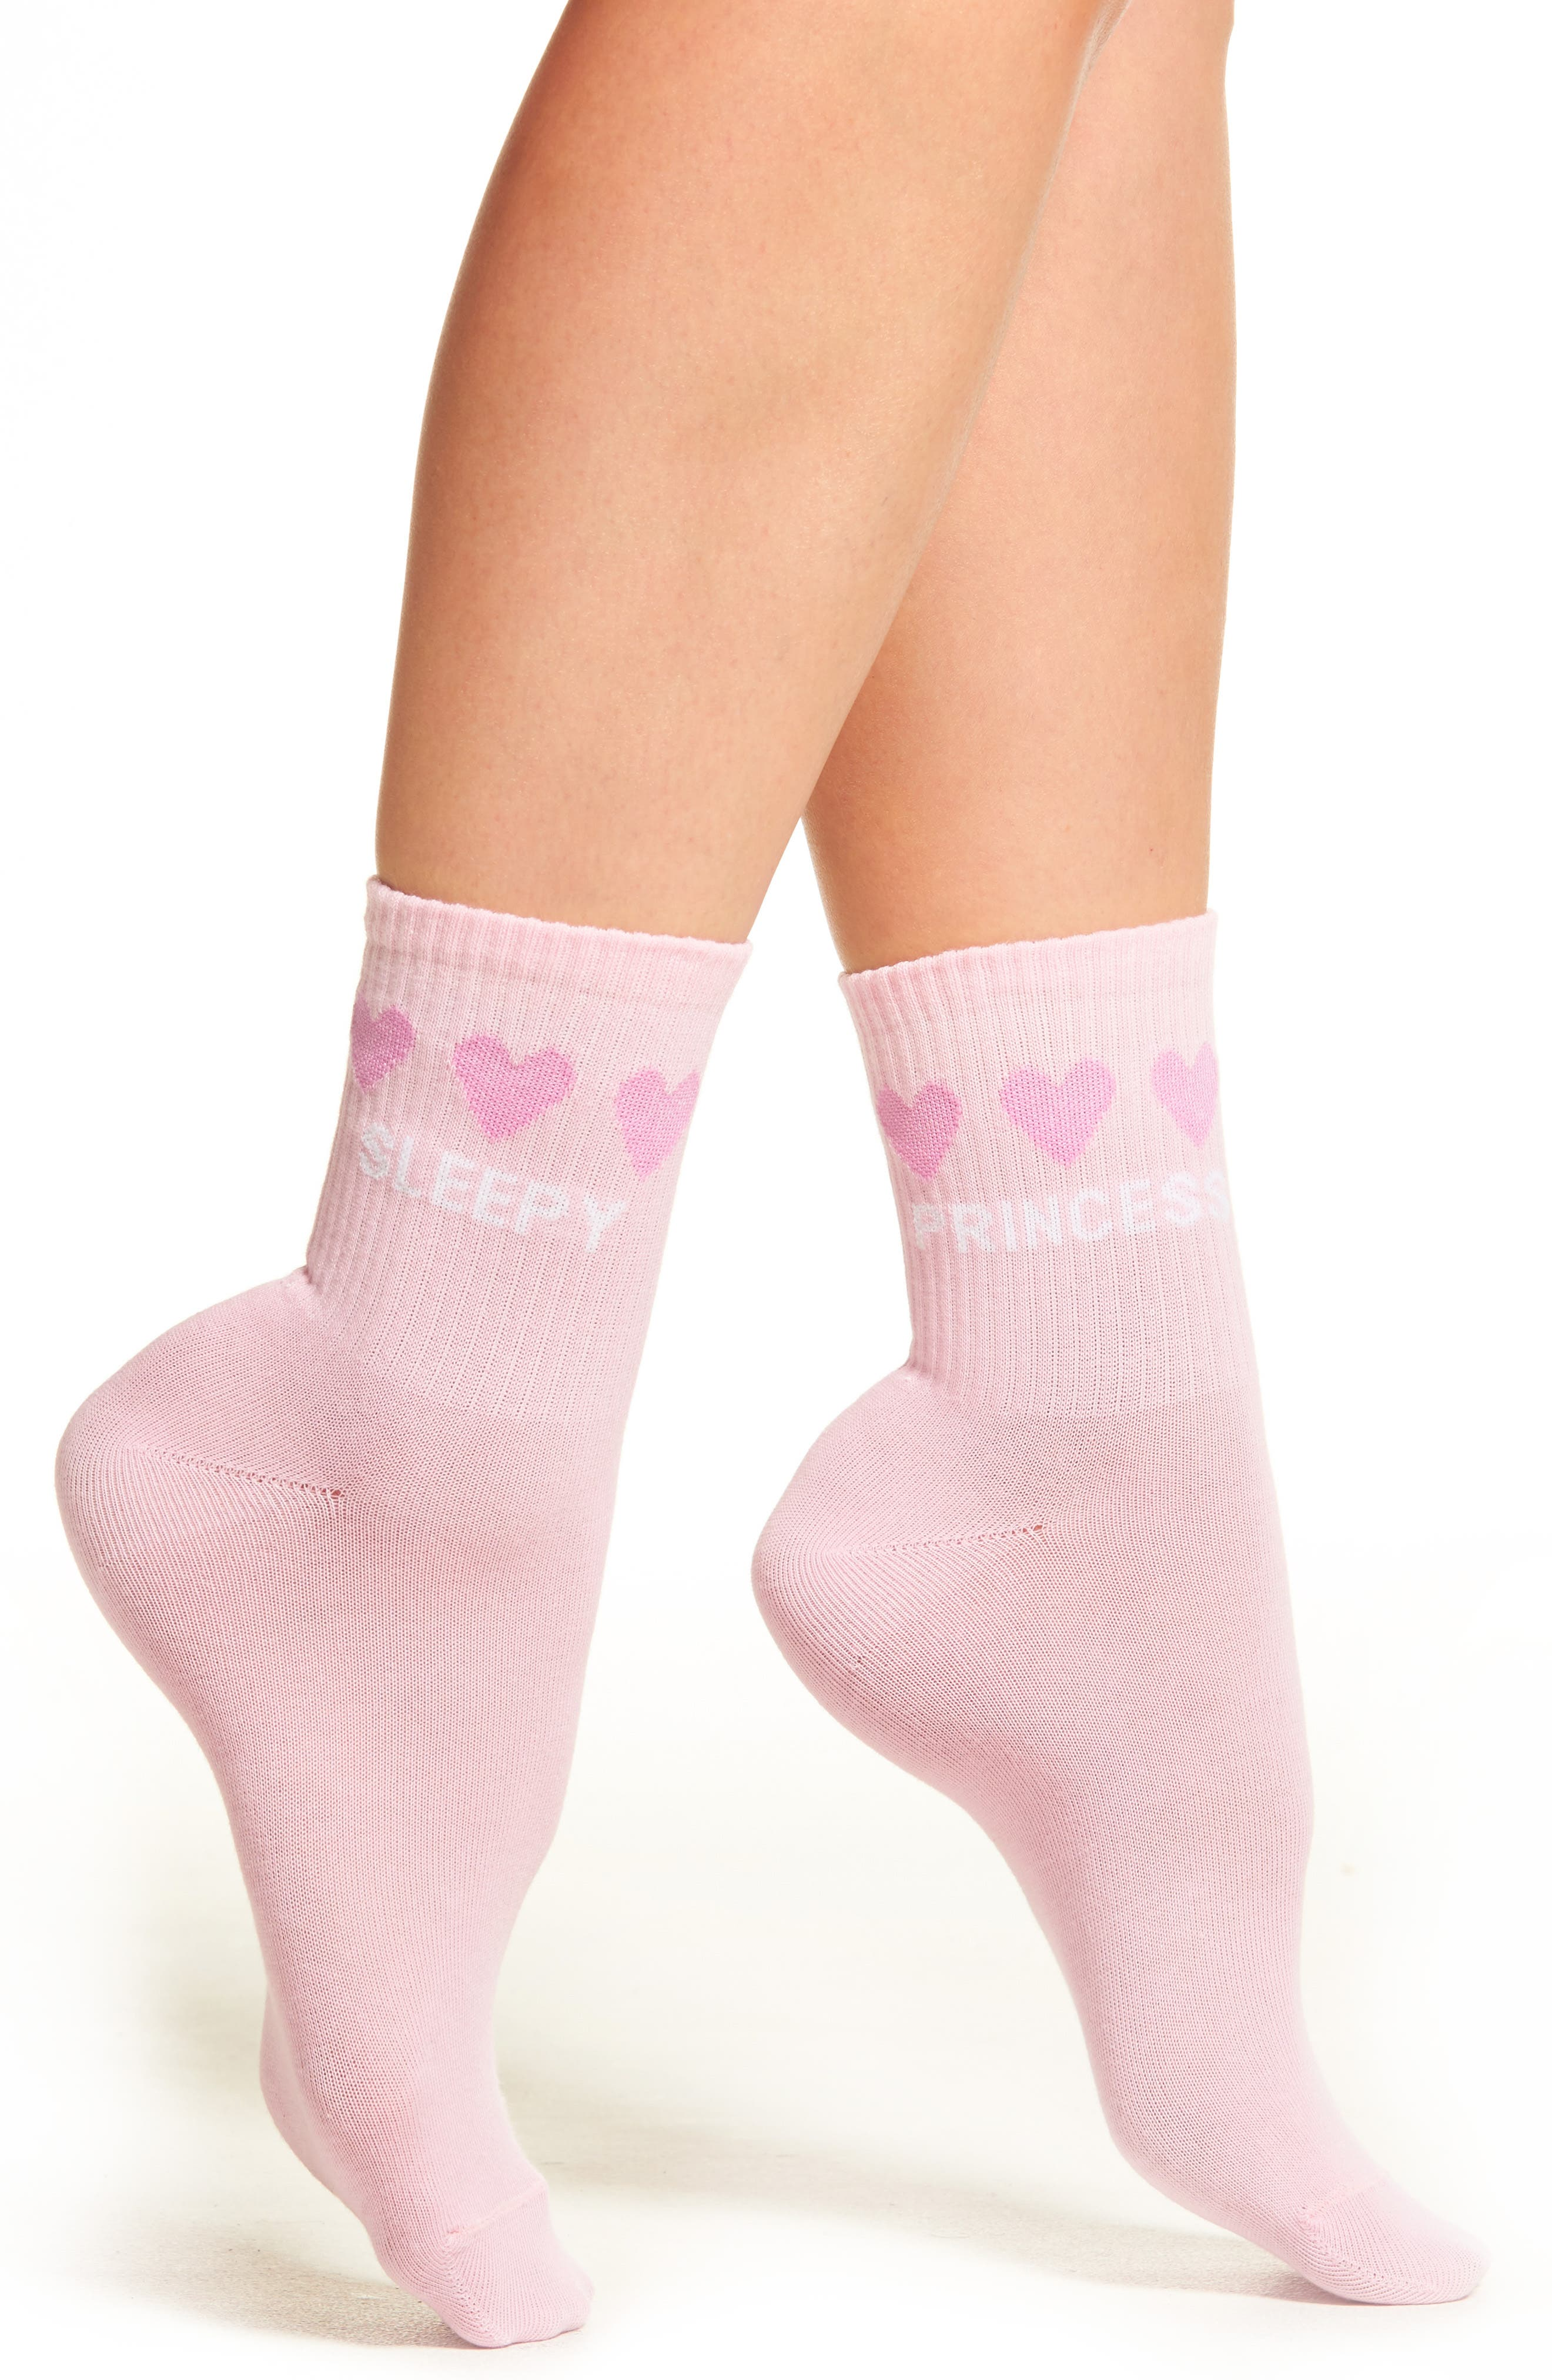 Sleepy Socks,                             Main thumbnail 1, color,                             650